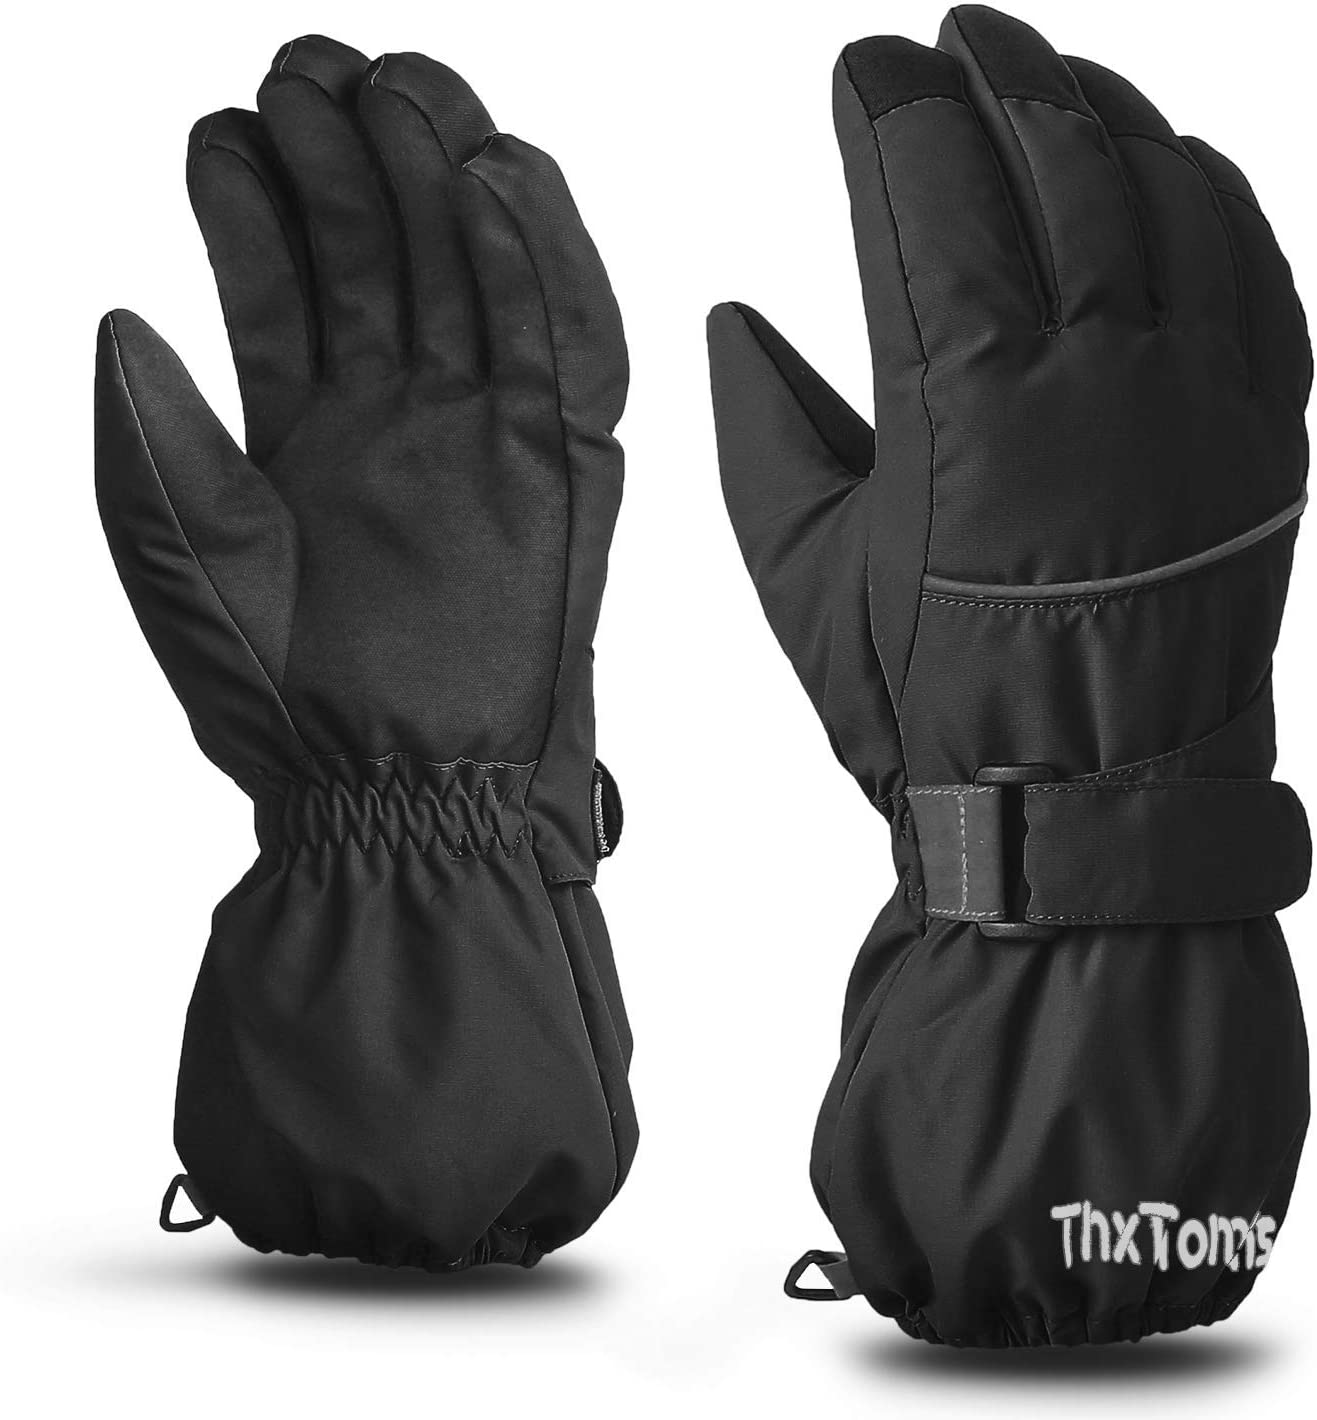 ThxToms Kids Mittens Winter Waterproof Warm Gloves with Long Cuff for Cold Snow Weather Outdoor Activities